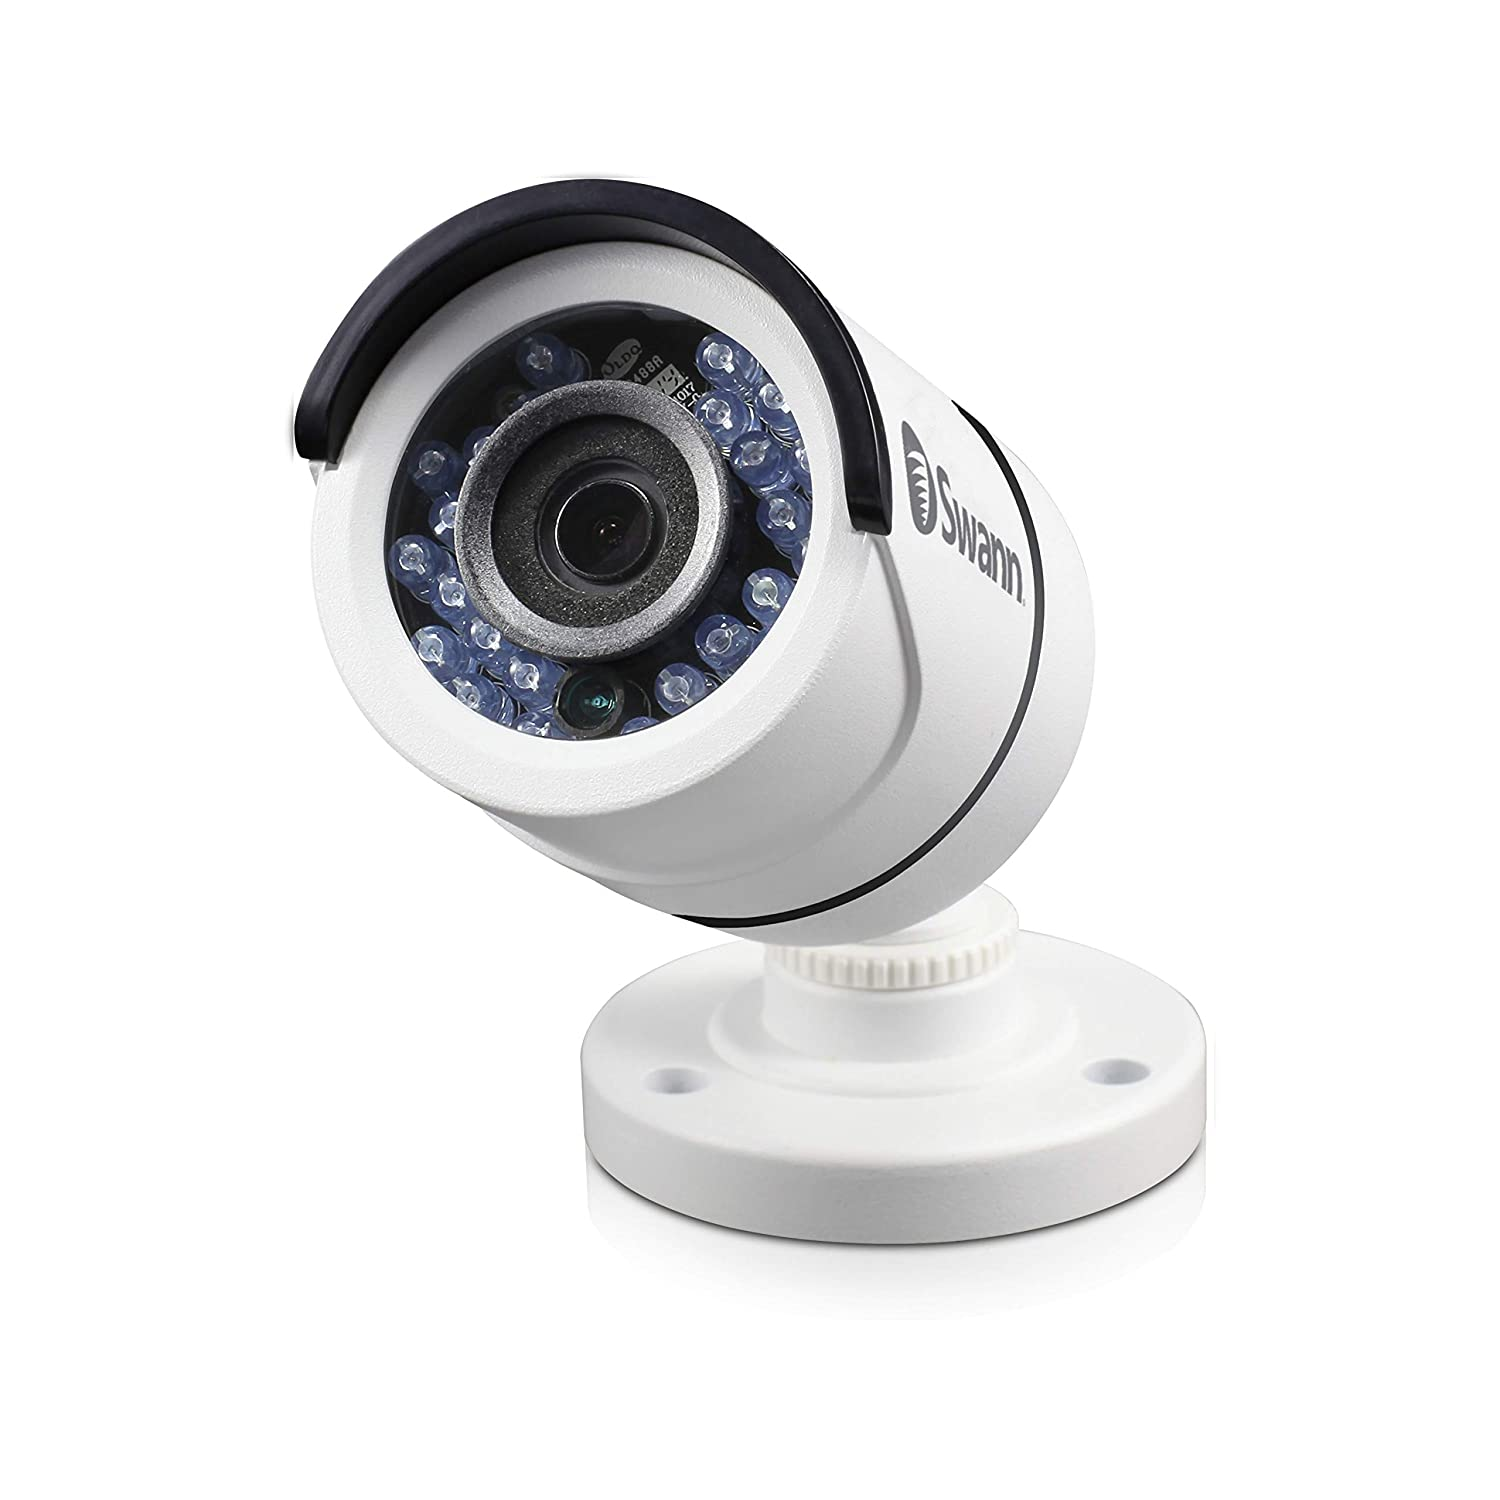 Swann SWPRO-T890CAM-US, Pro-T890 CCTV 5MP TVI White Analog Bullet Camera